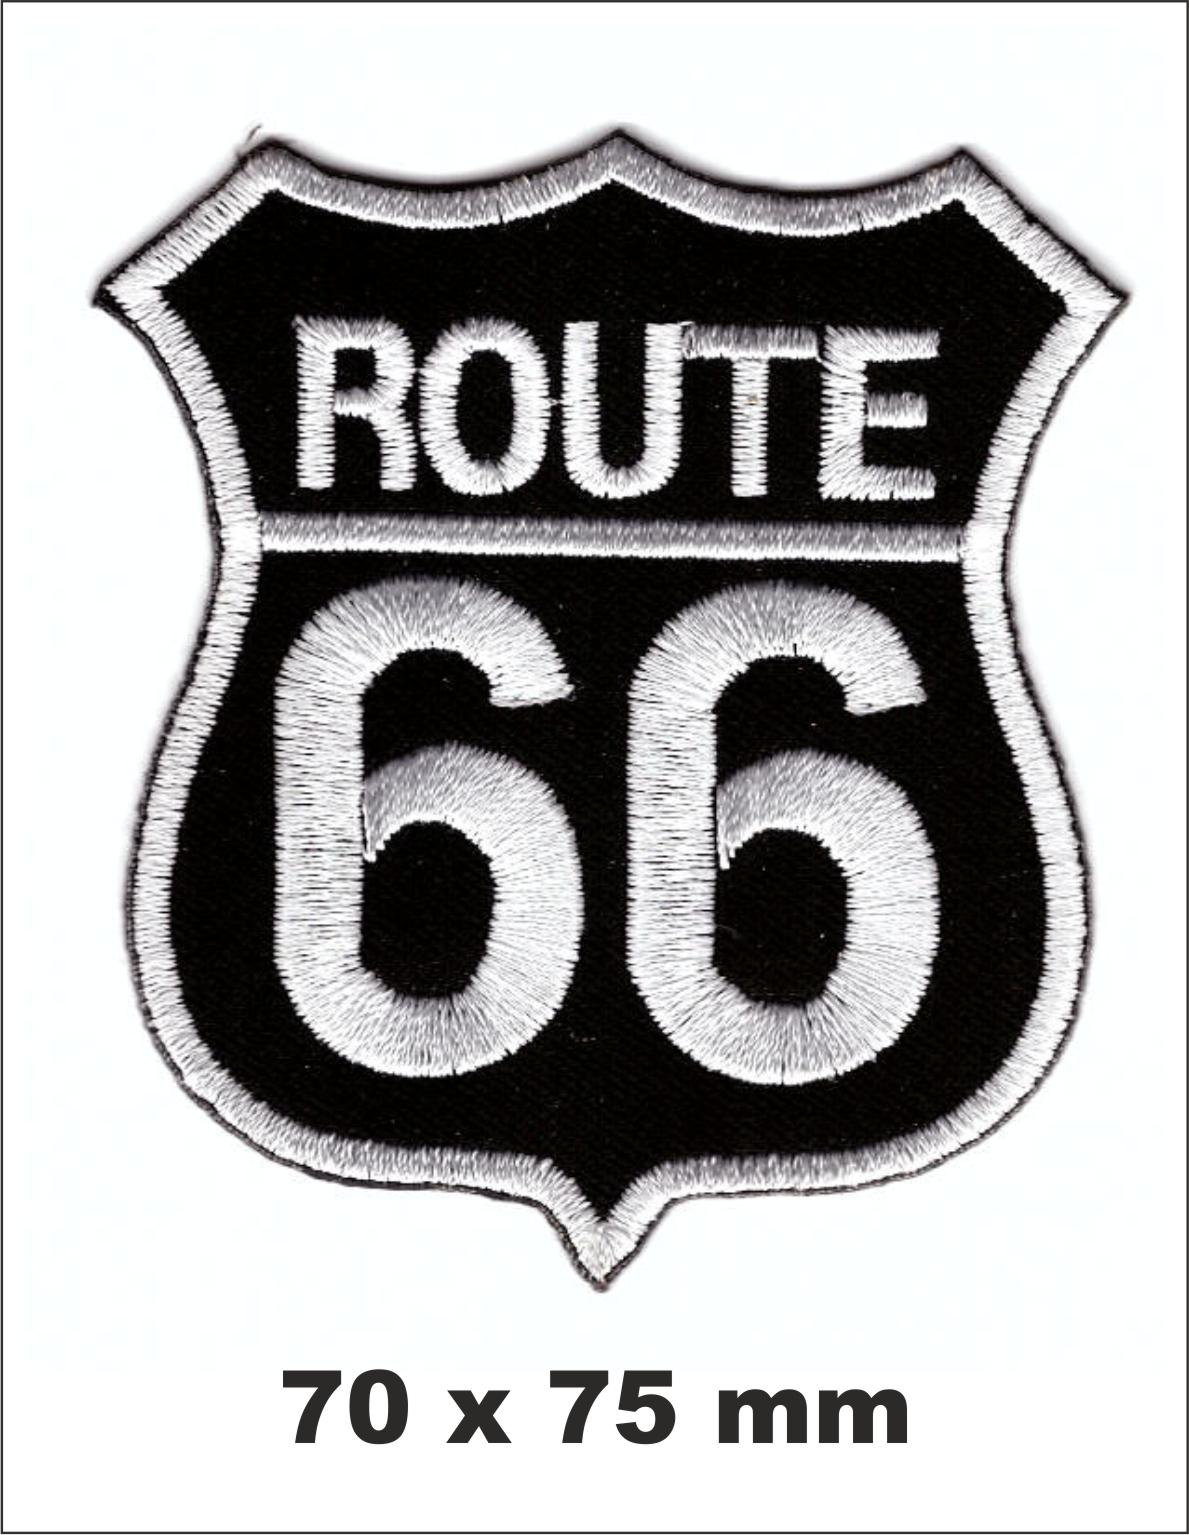 PARCHE BORDADO ROUTE 66